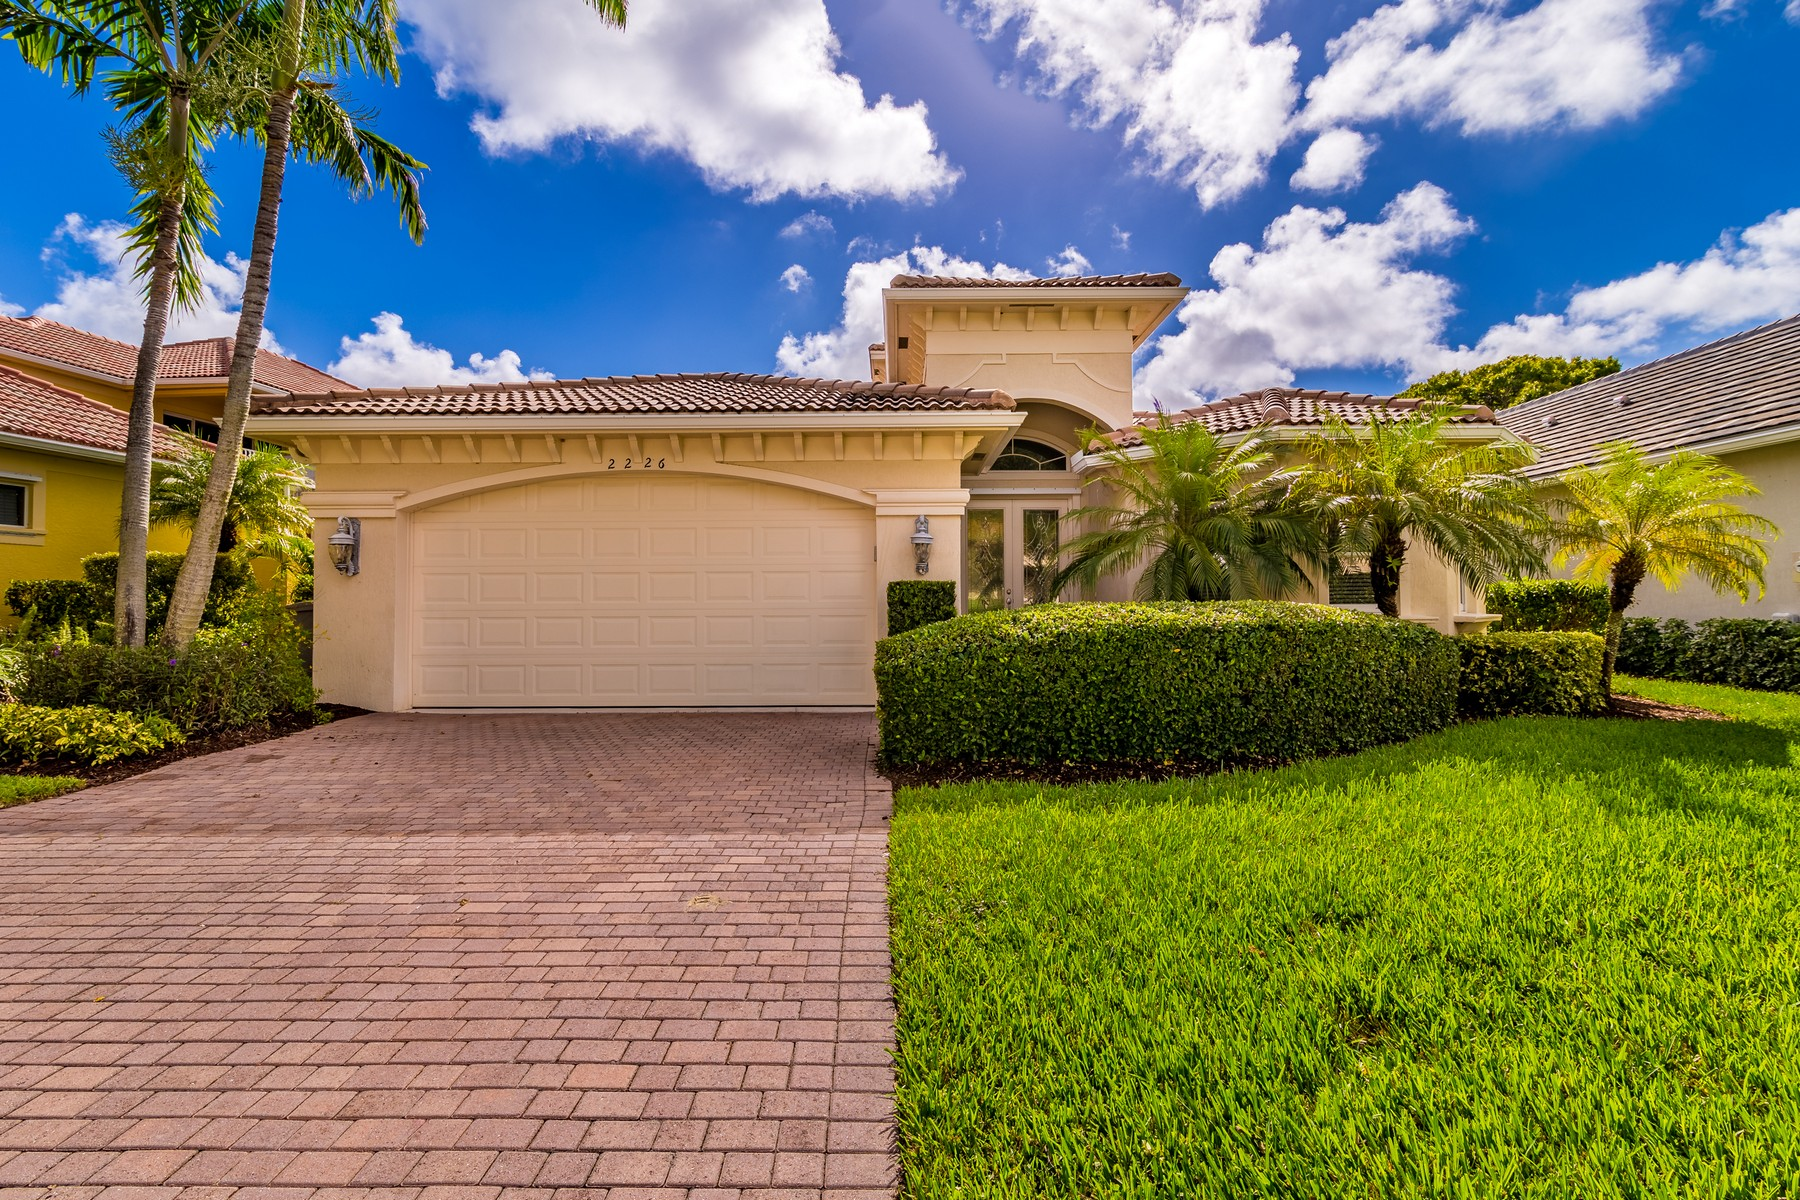 Single Family Home for Sale at Waterfront Home in Gated Community 2226 Falls Circle Vero Beach, Florida 32967 United States